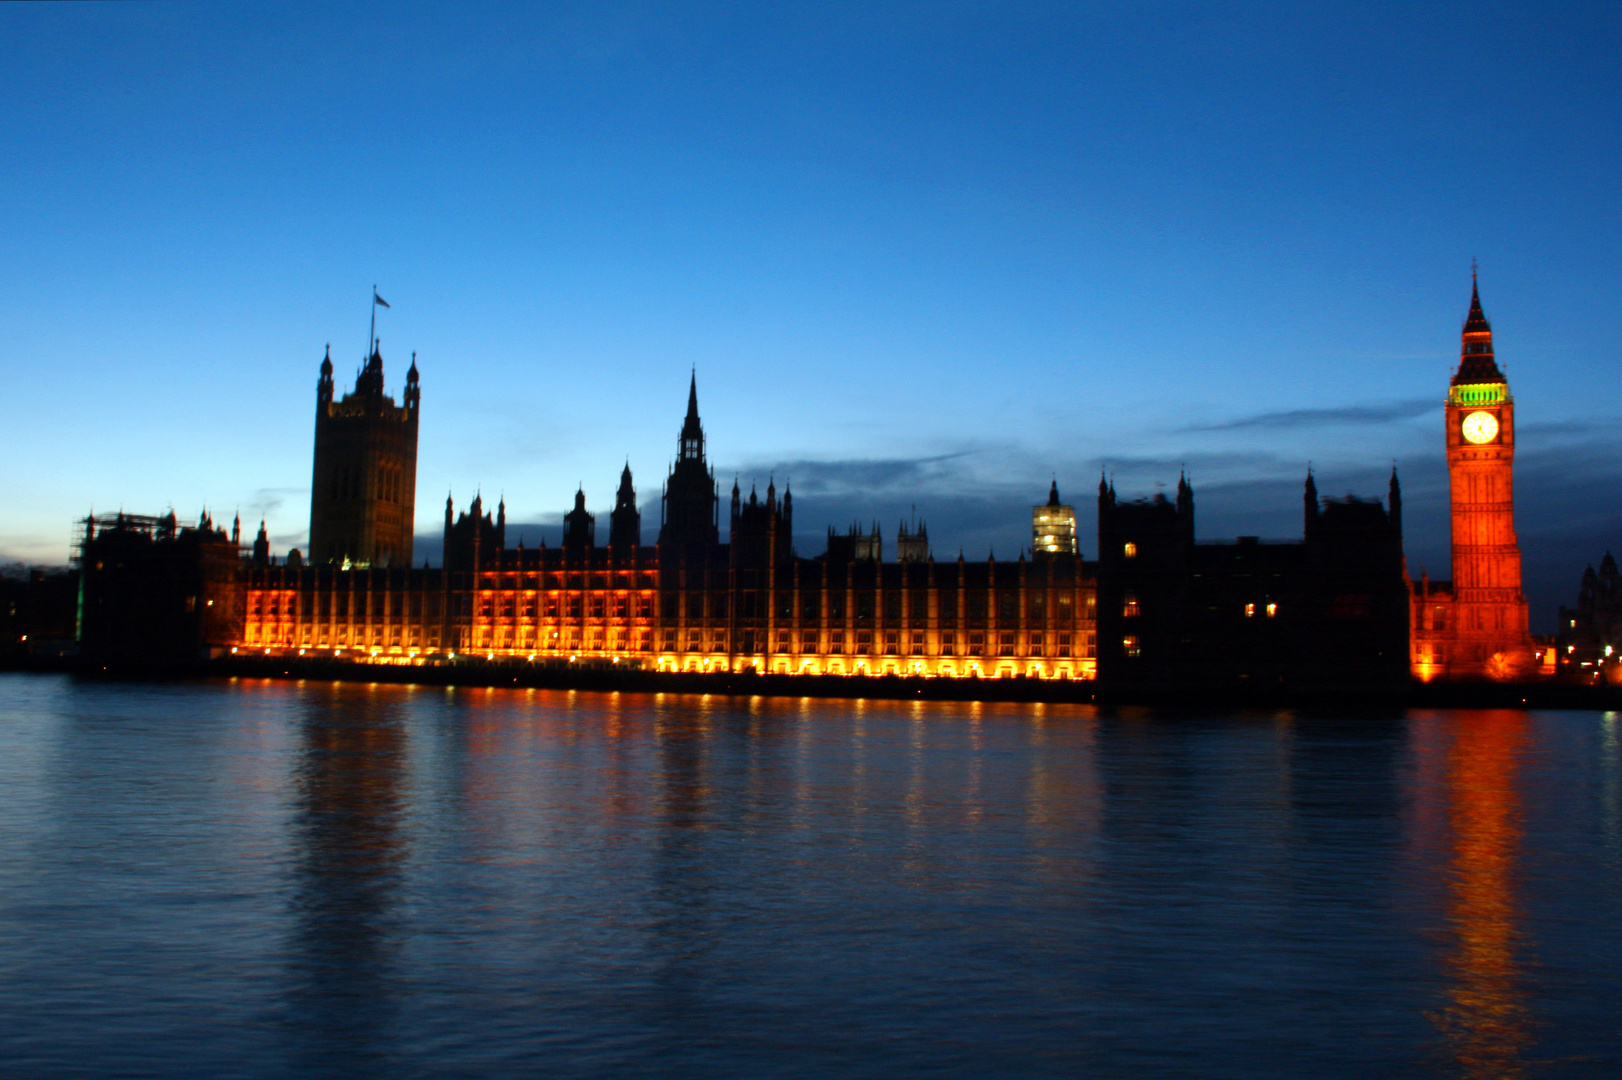 House of Parliament bei Sonnenuntergang